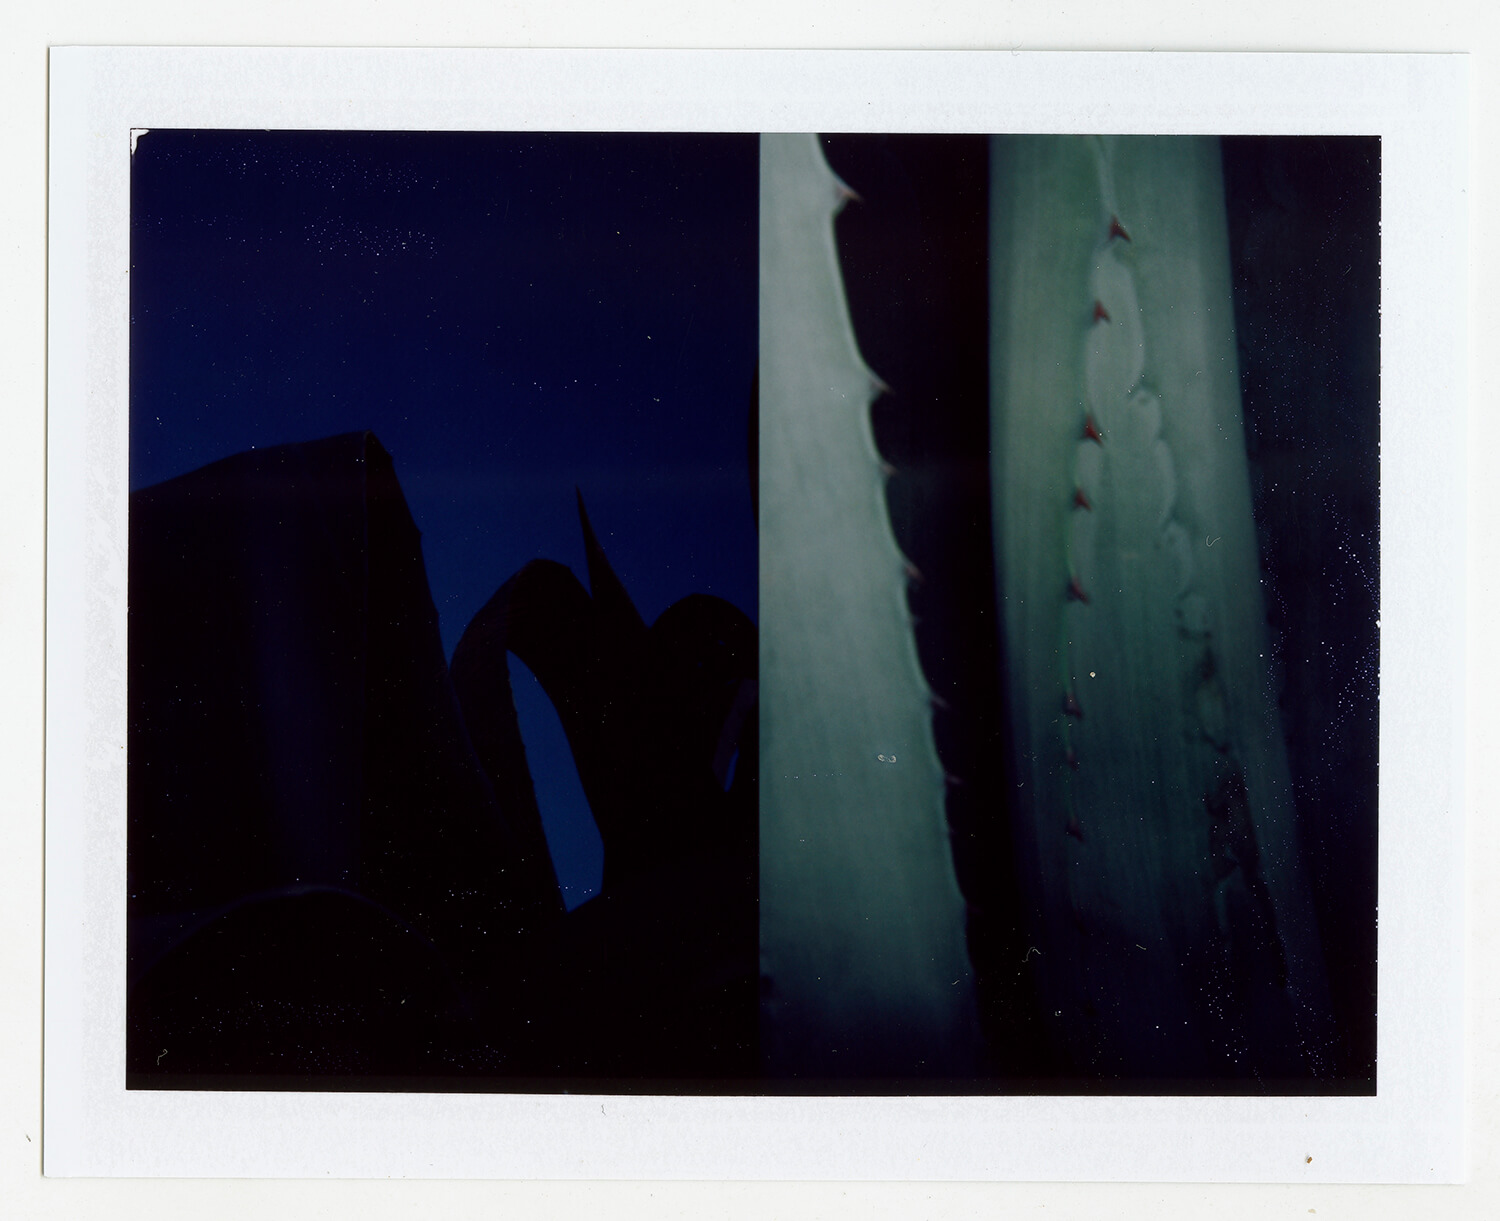 I.D.062, The Polaroid Revolutionary Workers, 2013, Polaroid Picture, 107mm x 86mm